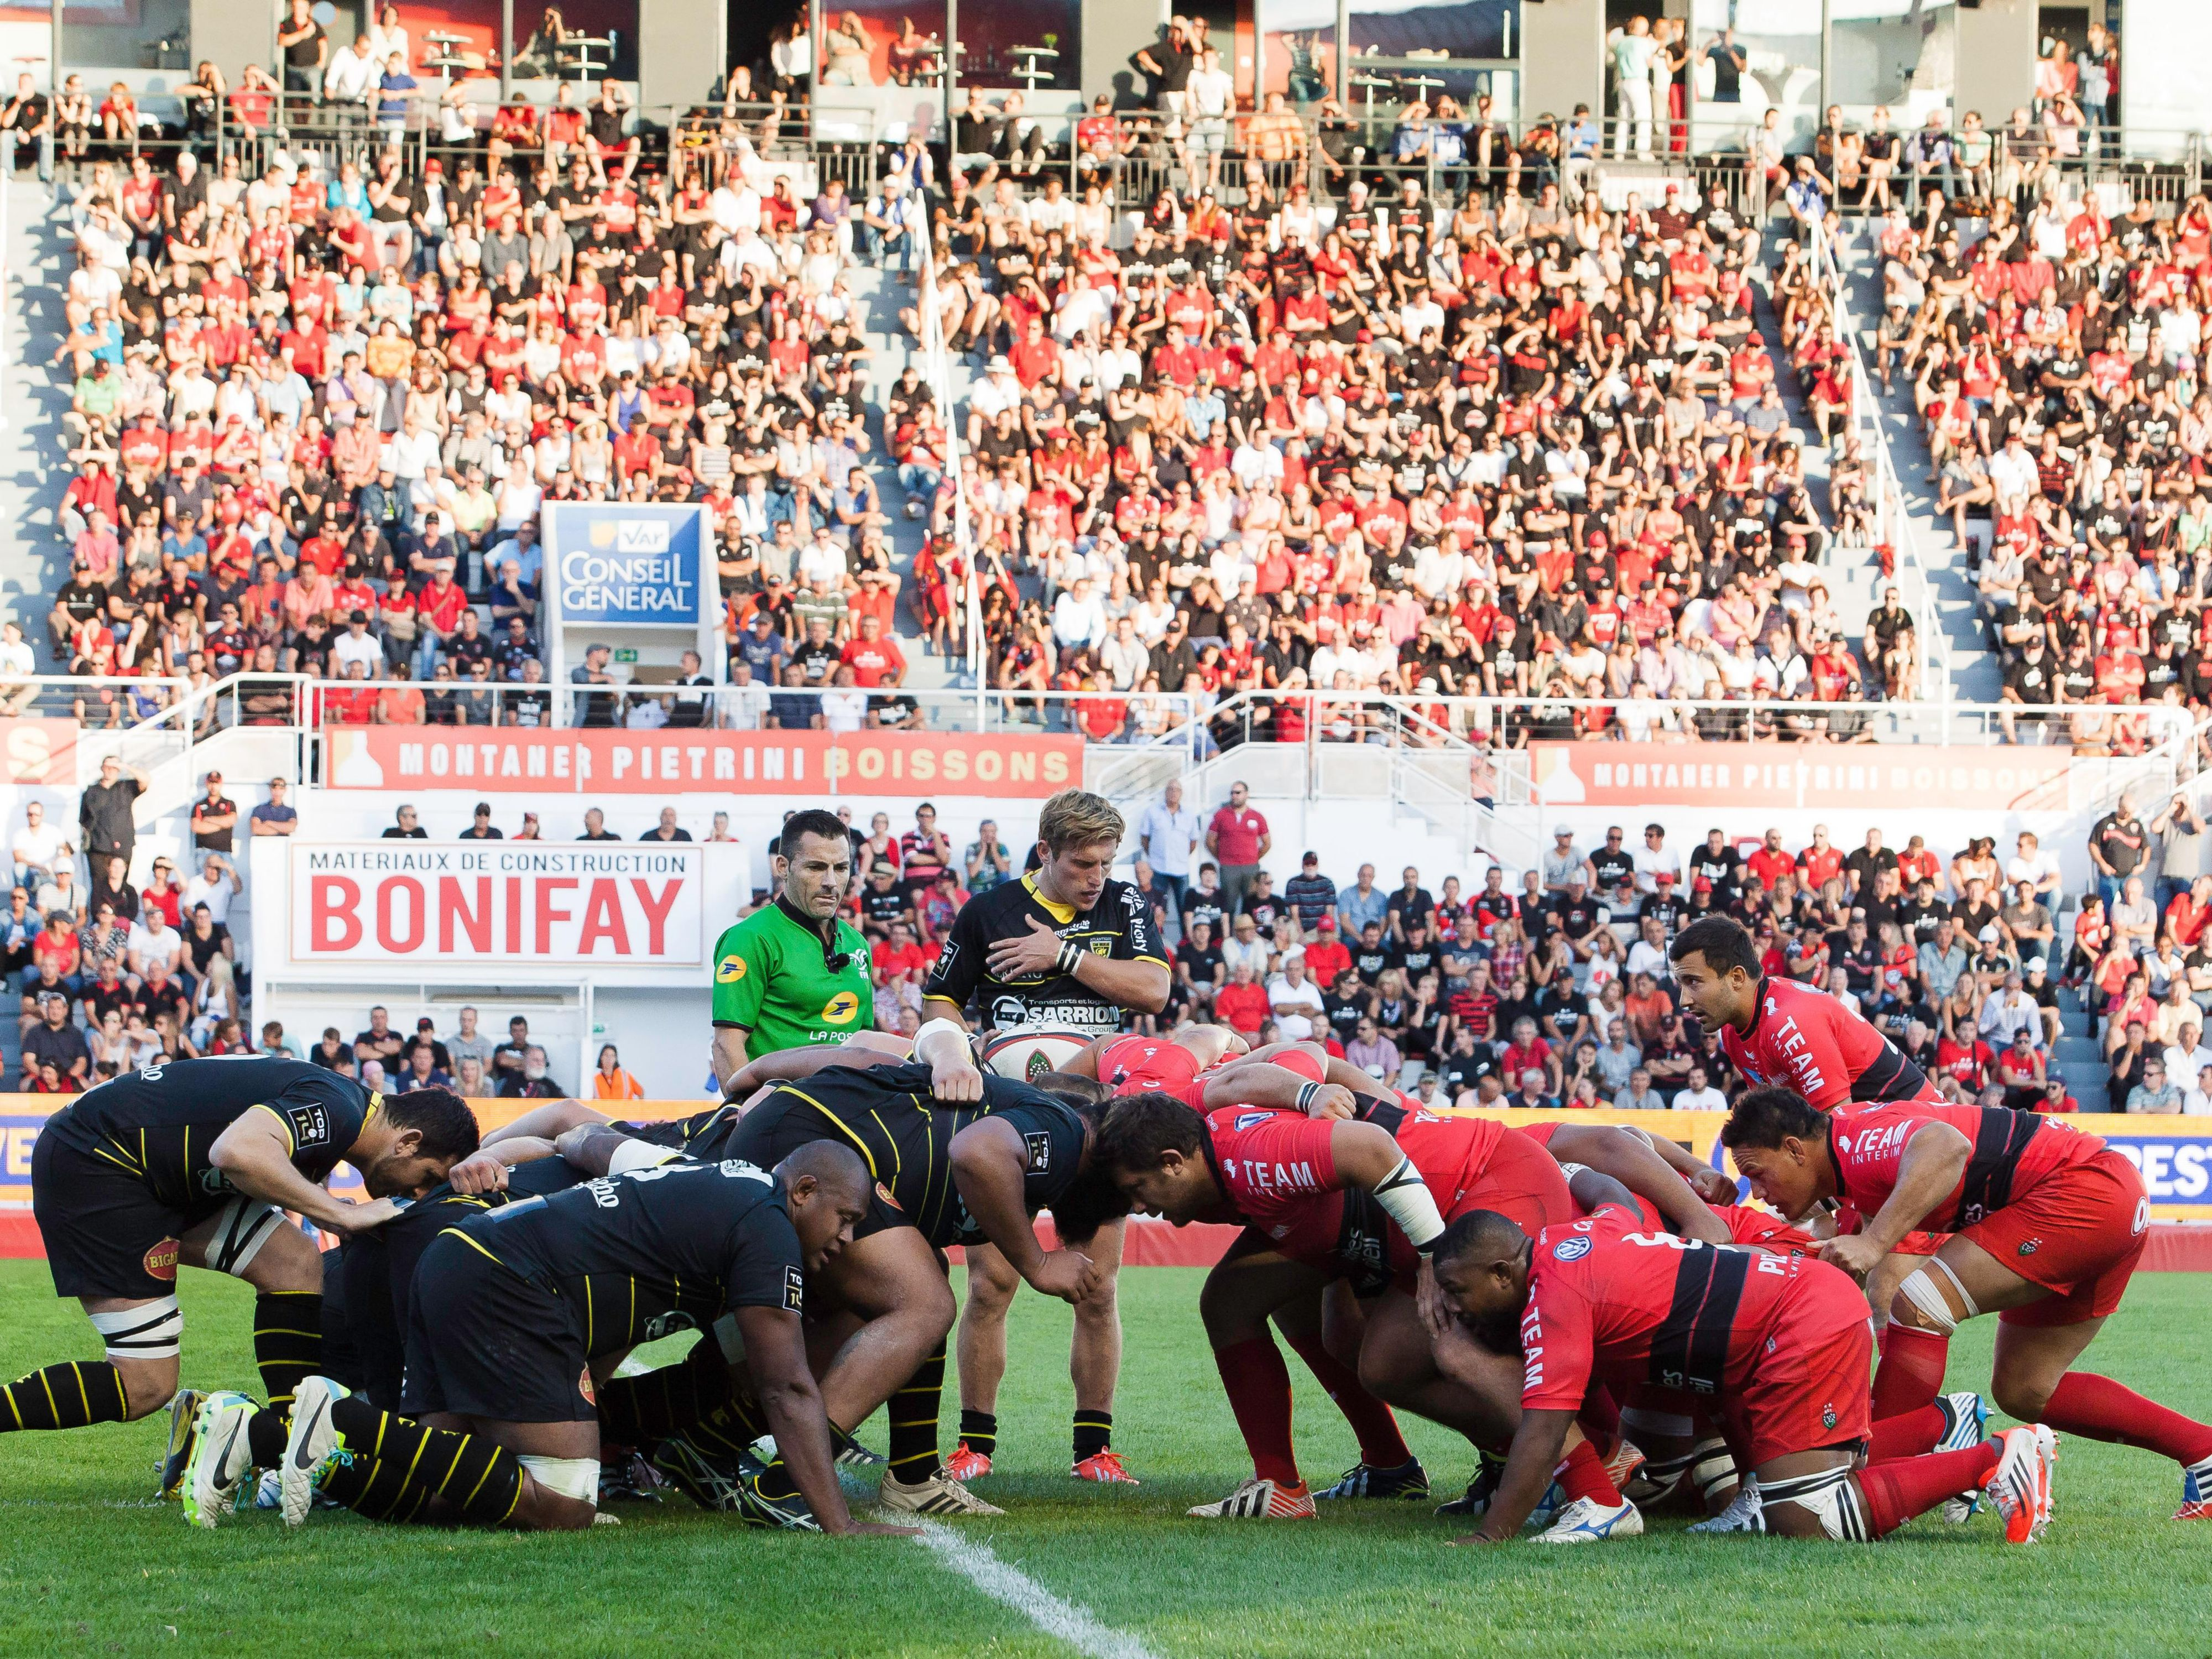 We are proud of our rugby team the RC Toulon